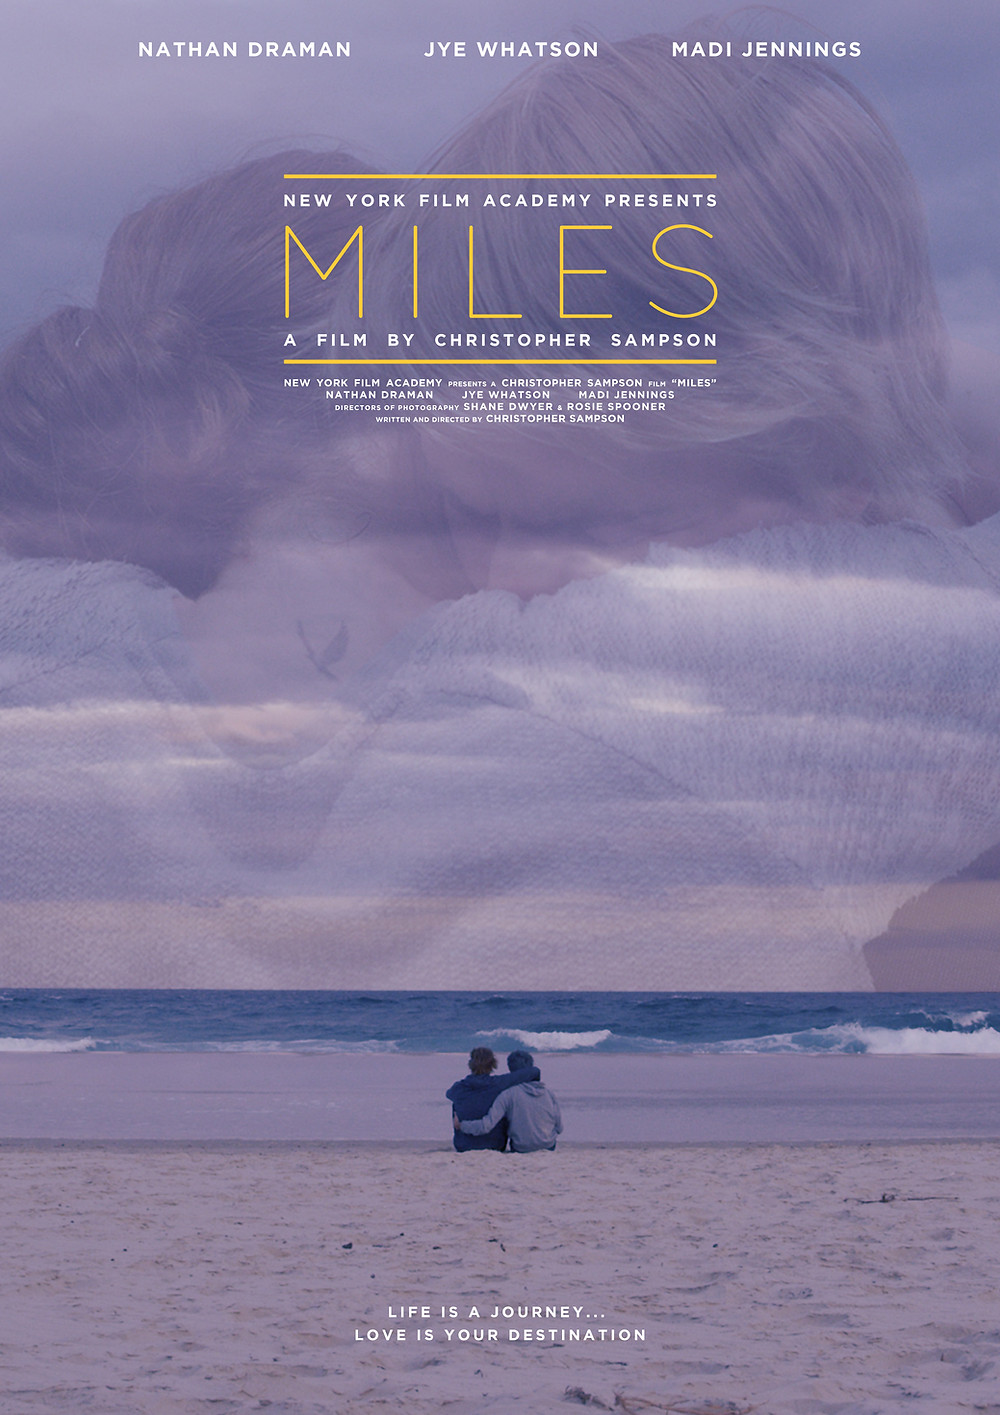 Poster for Miles showing characters, beach and sky.